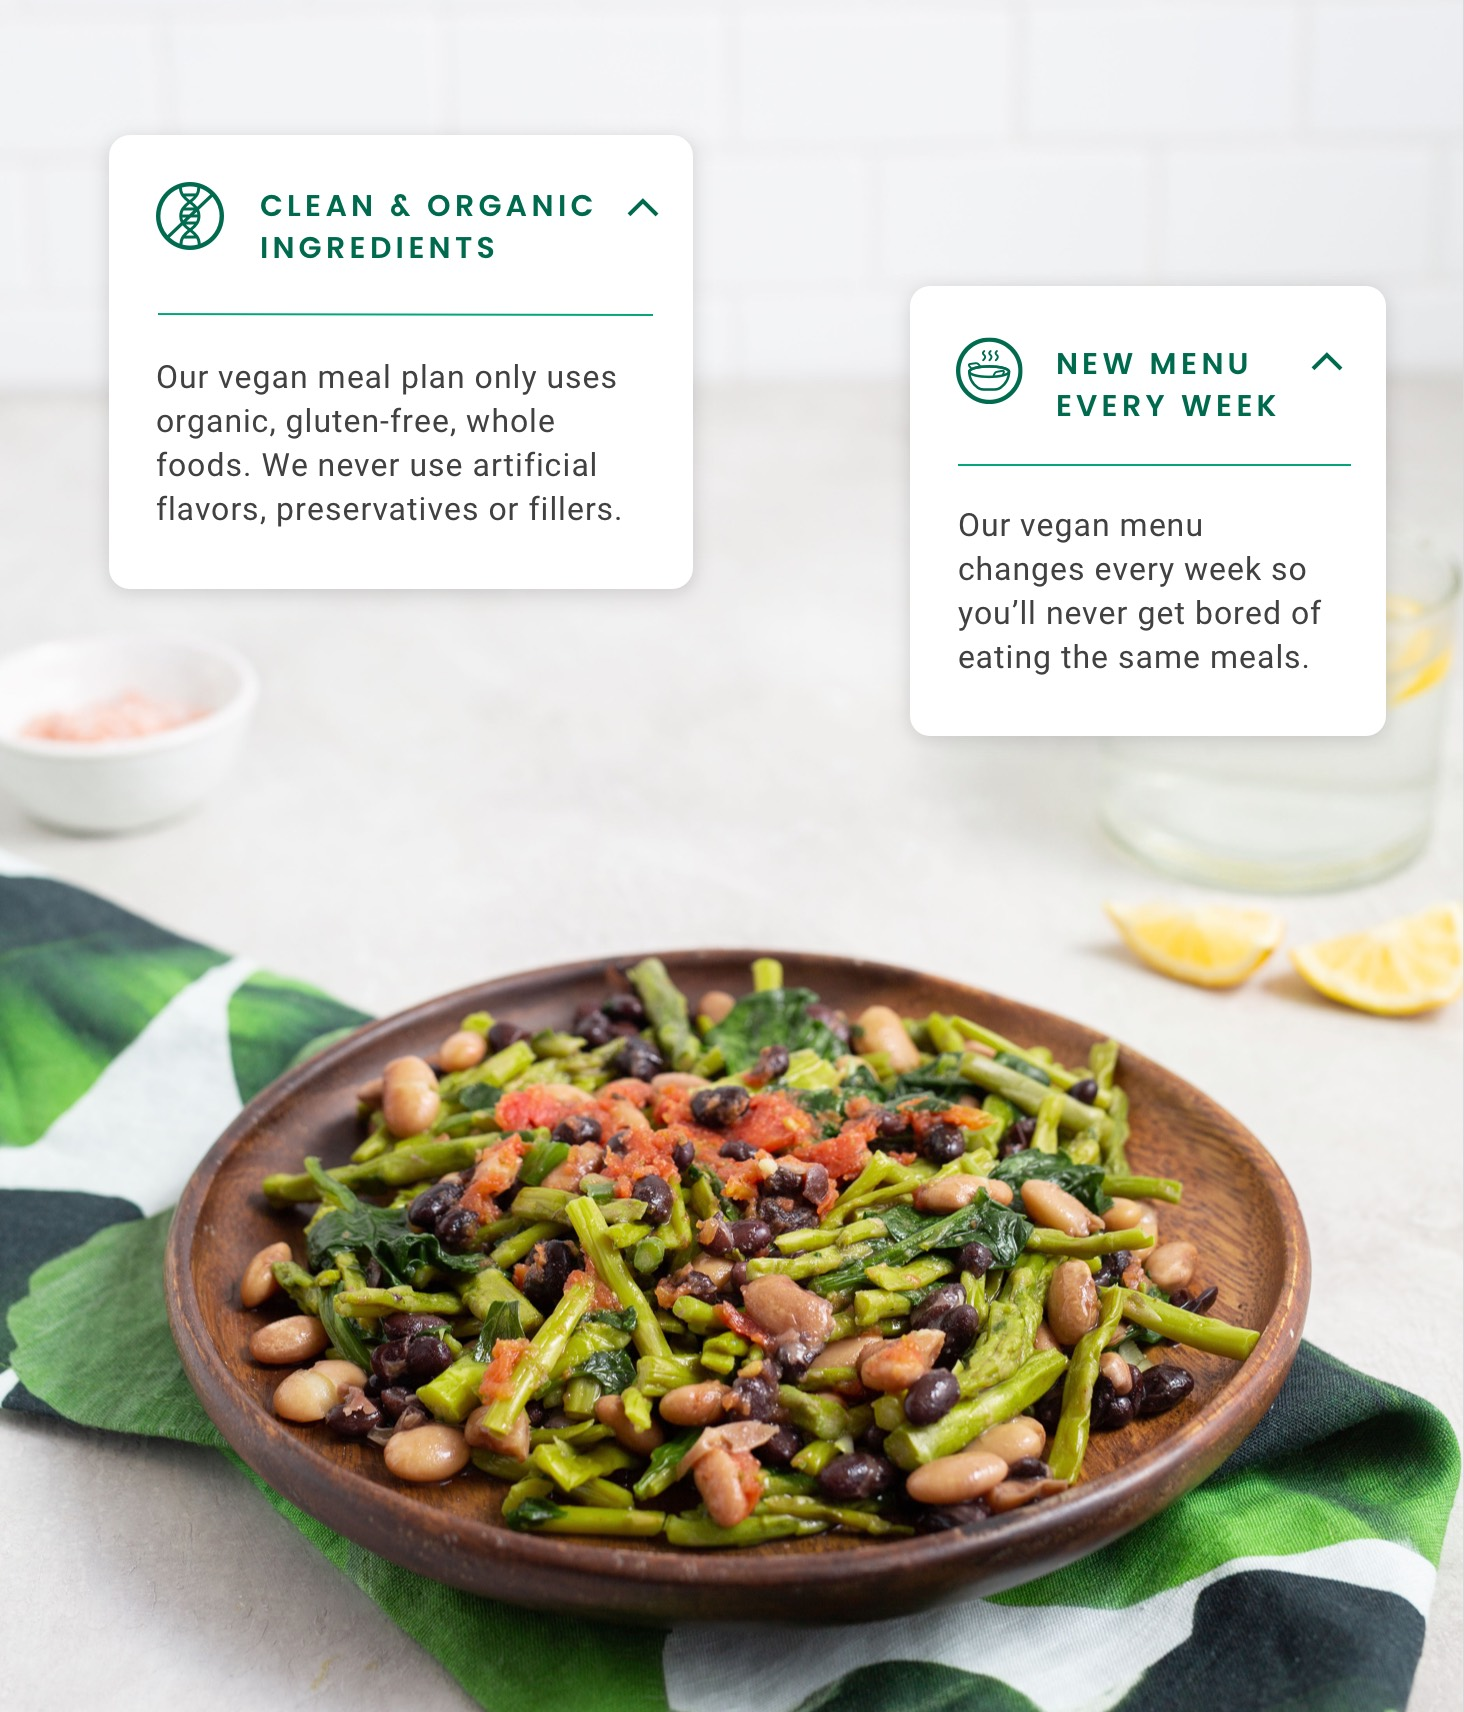 Asparagus meal ingredients highlight